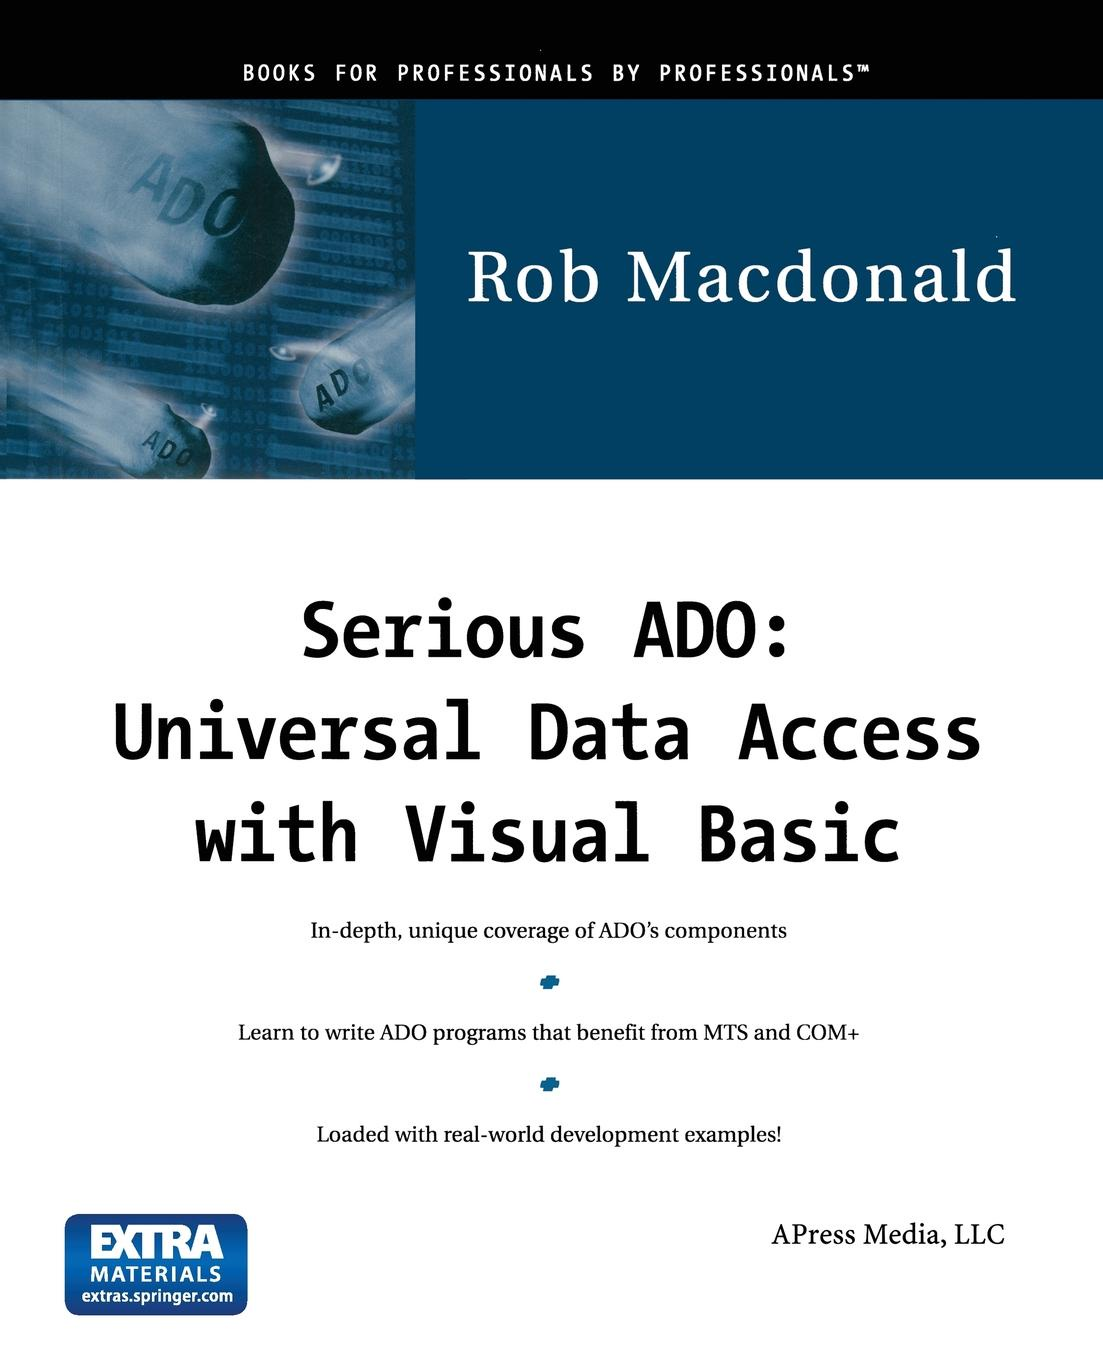 Robert MacDonald, Rob MacDonald Serious ADO. Universal Data Access with Visual Basic .With CD-ROM. kitivr39404unv75606 value kit innovera cd dvd envelopes with clear window ivr39404 and universal correction tape with two way dispenser unv75606